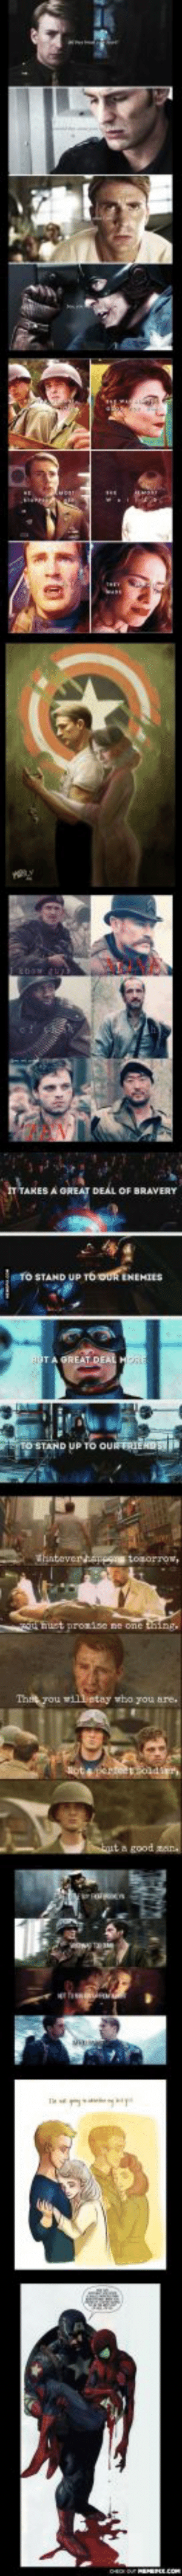 Why Steve Rogers inspires me - 1omg-humor.tumblr.com: IY TAKES A OREAT DEÁL OF BRAVERY  TO STAND UP TO oUR ENEMIES  PREAT DEAL  STAND UP TO OURTRIEND  thatevertarpe tosorrow,  hust pronise ne one thing.  Tht you willetay who you are.  ote oad Why Steve Rogers inspires me - 1omg-humor.tumblr.com